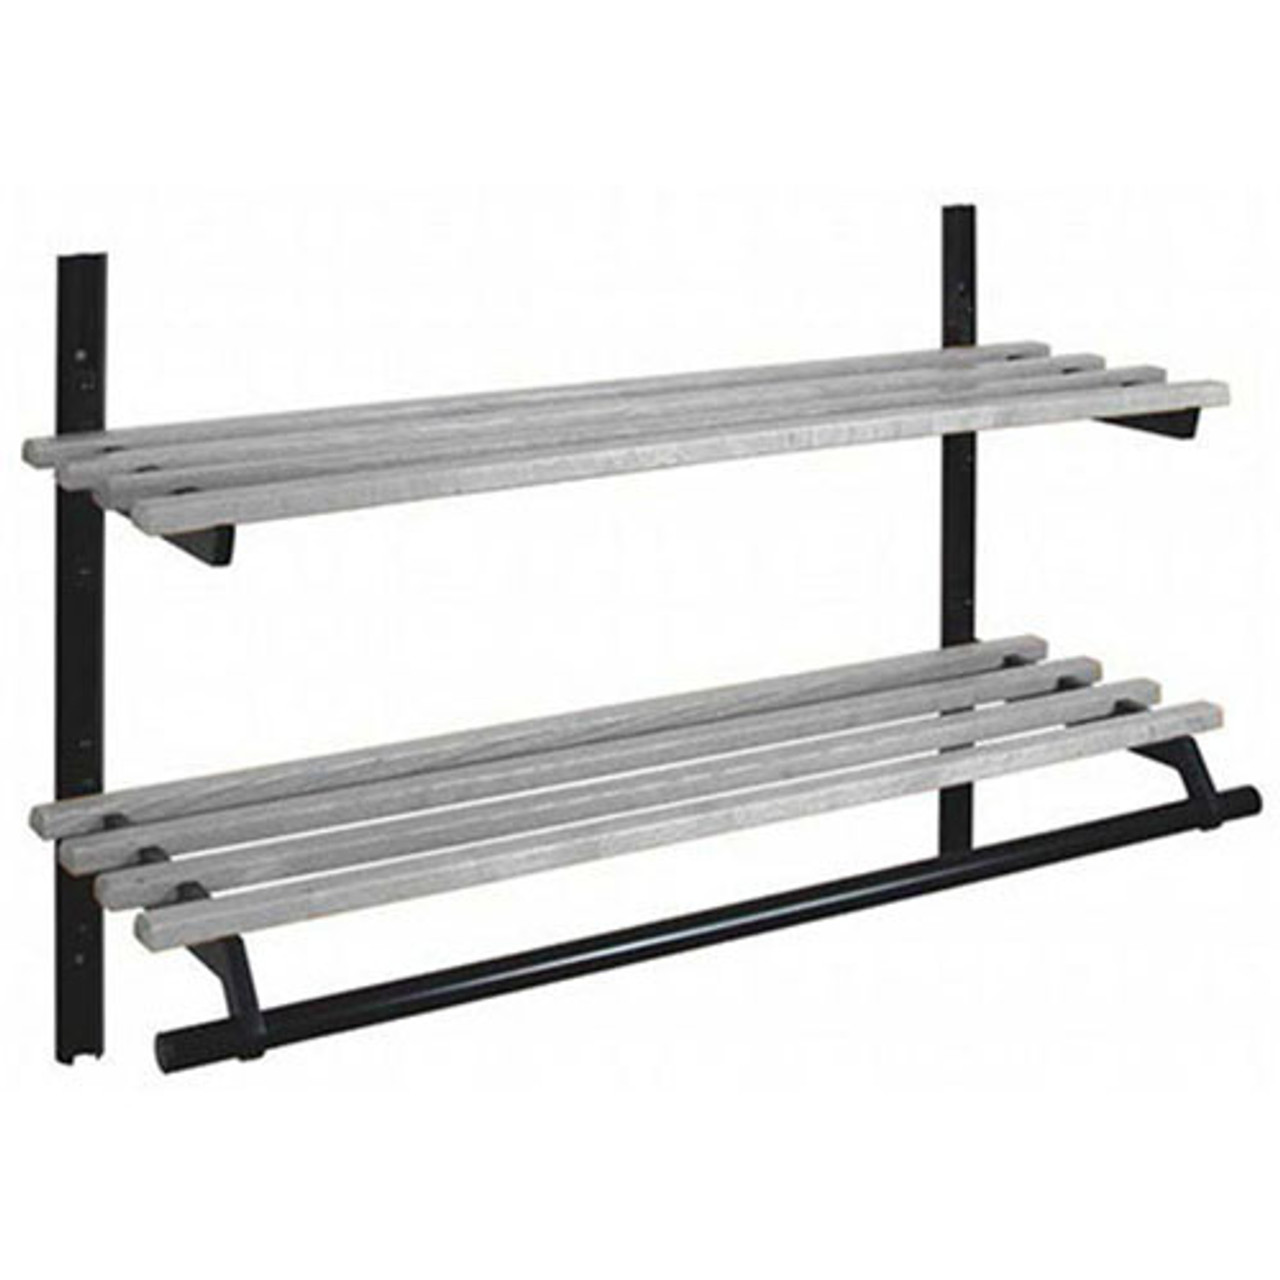 Unlimited Double Shelf Wall Coat Rack with Hanger Rod 104 Series - Image Illustrates Design, Not to Scale